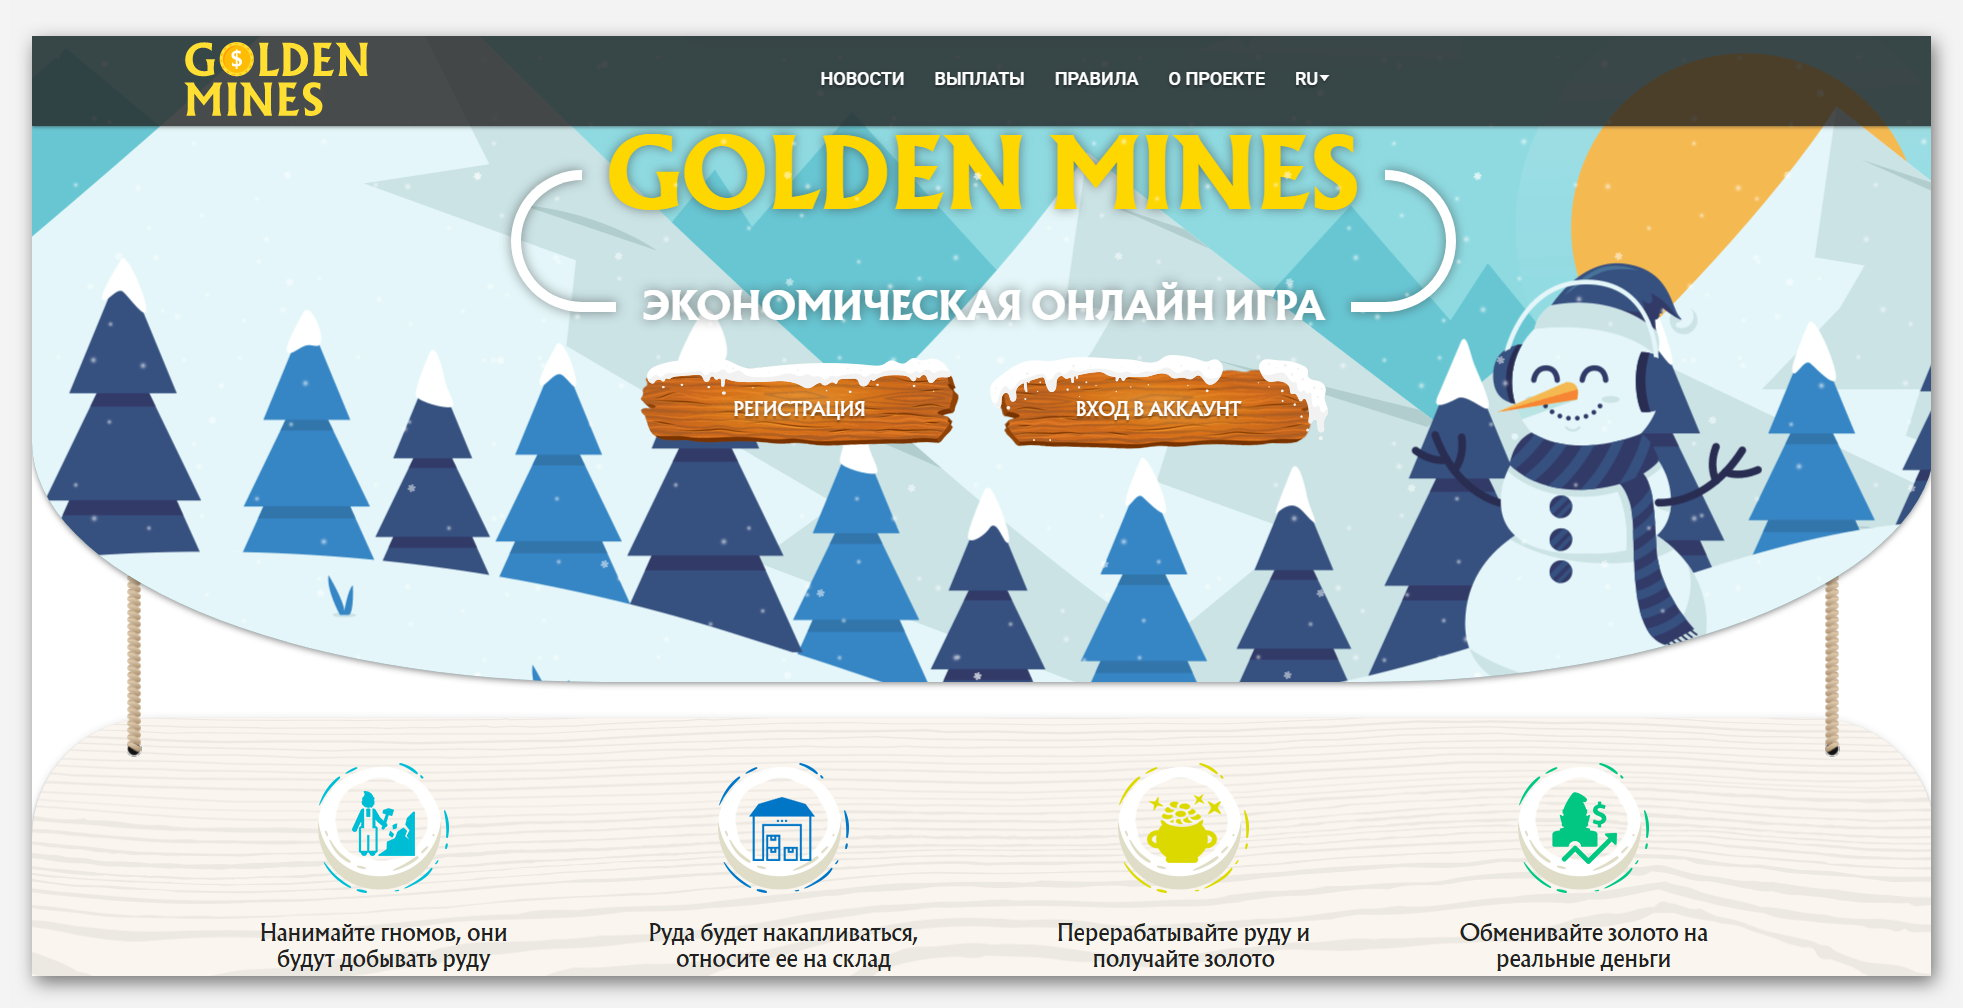 Golden Mines - Economic netinu